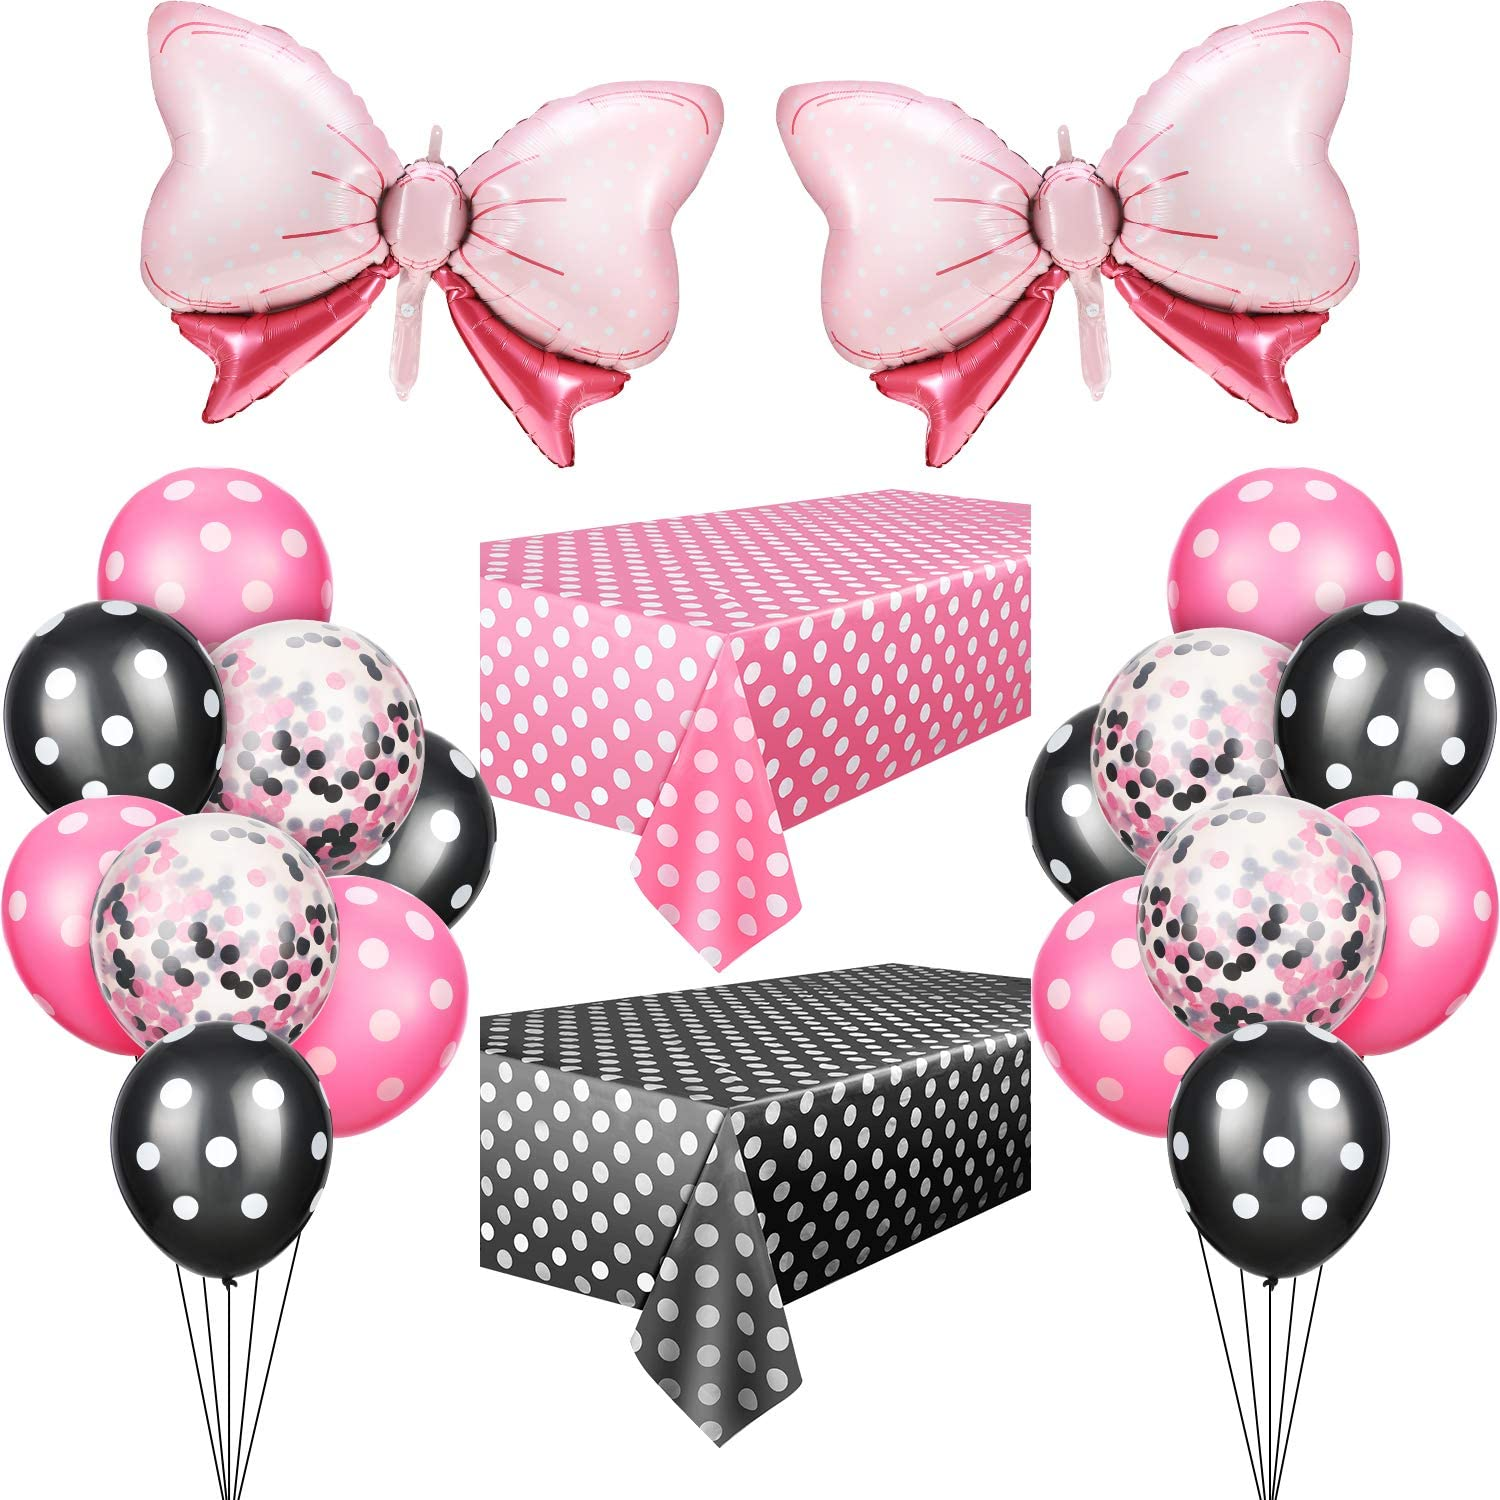 Mouse Party Decoration Polka Dot Mouse Decoration Polka Dot Tablecloths, Pink Bow Foil Balloons, Rose Red and Black Polka Dot Balloons, Mouse Balloons for Mouse Party Supplies